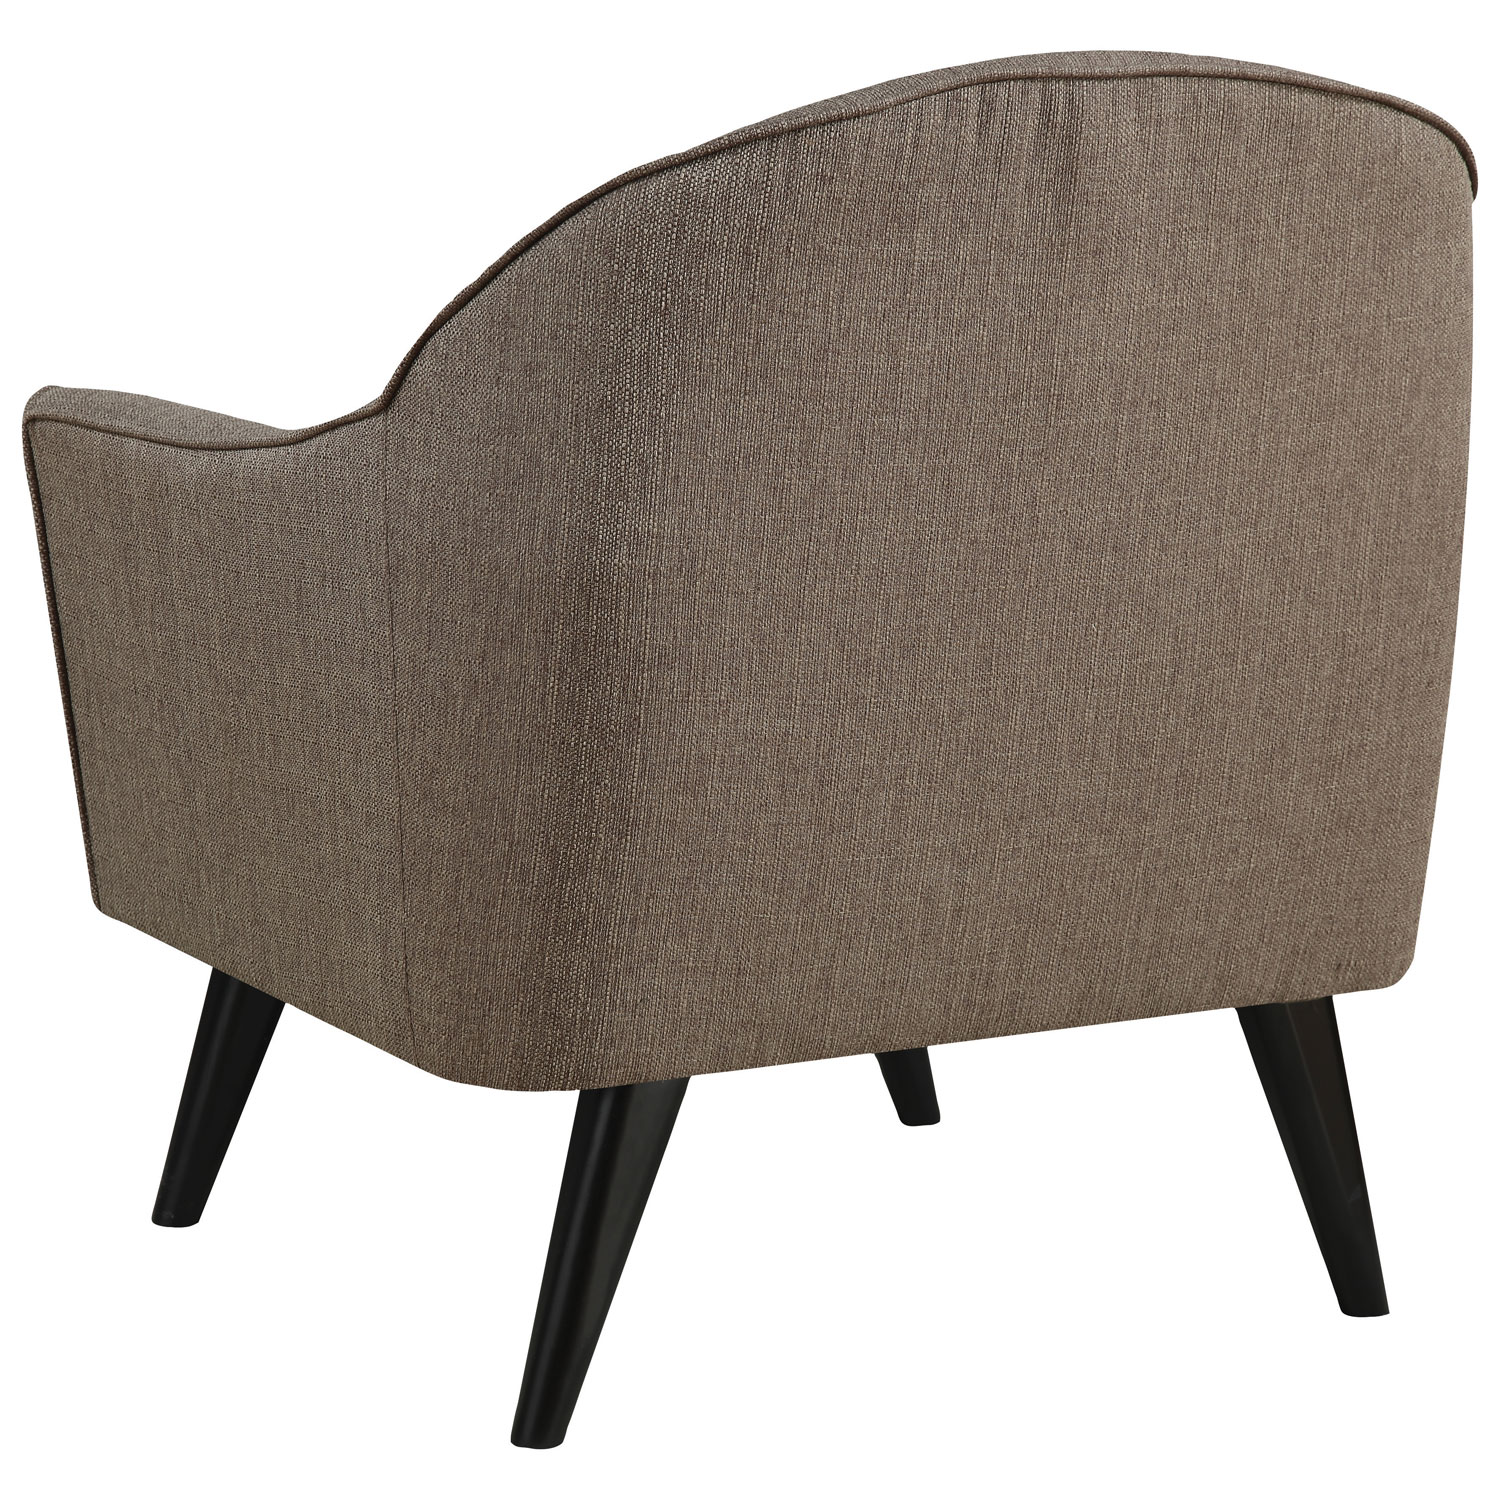 casana contemporary polyester accent chair  brown  accent chairs  - casana contemporary polyester accent chair  brown  accent chairs  bestbuy canada